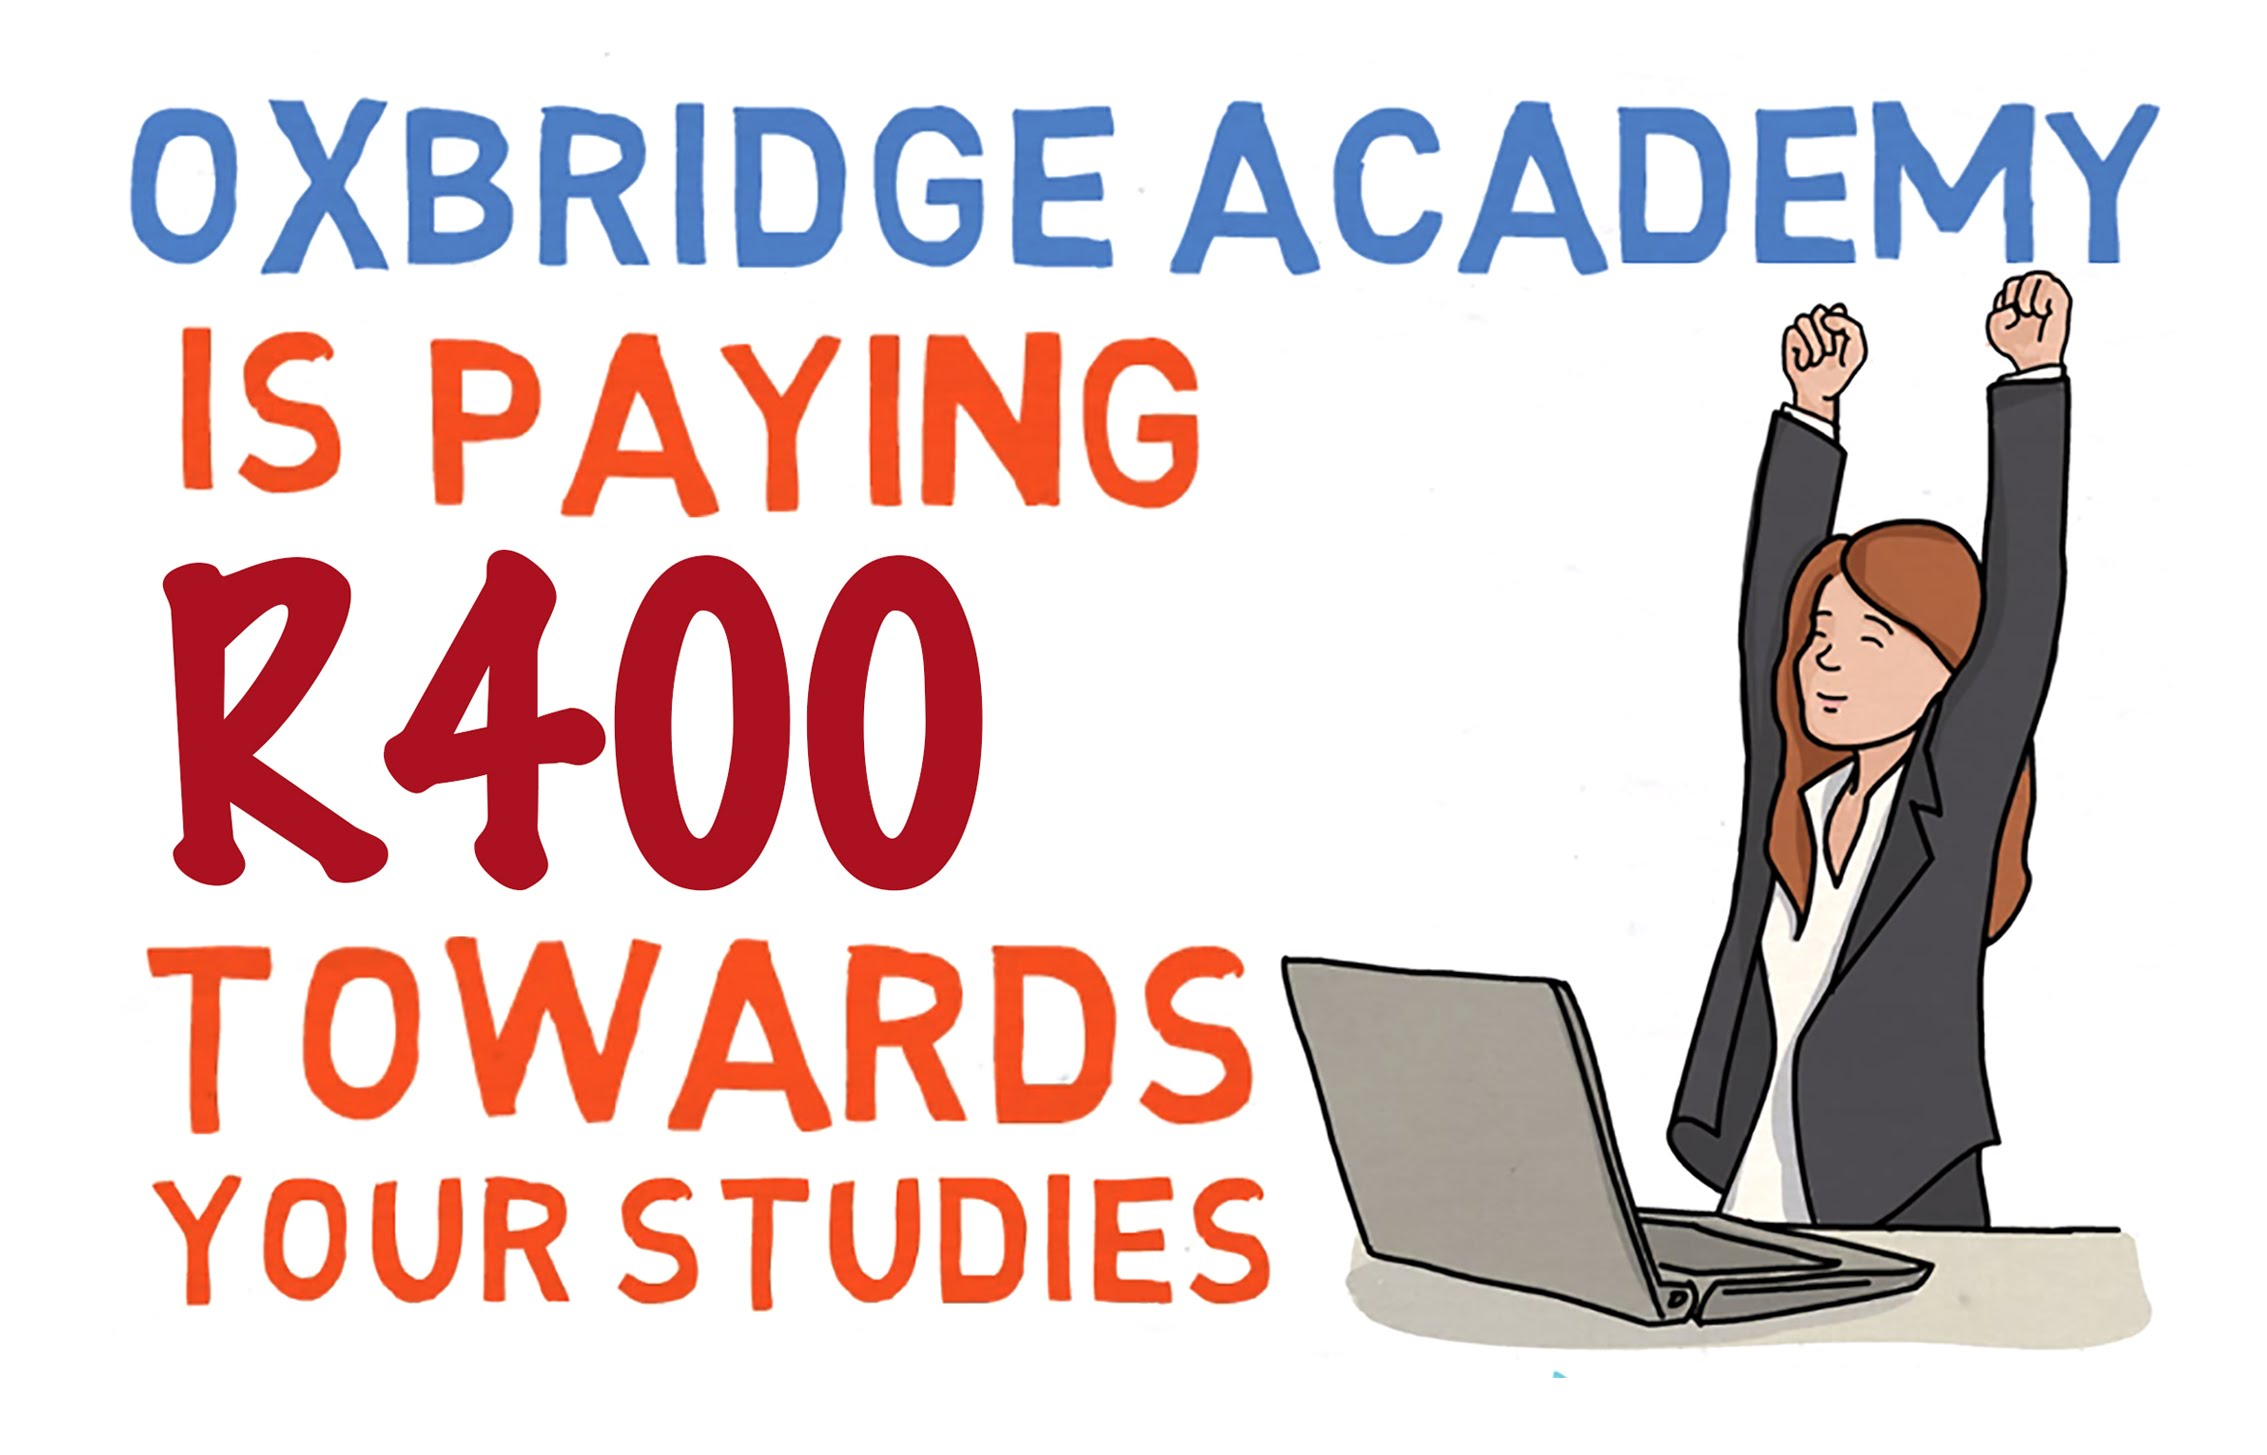 Get Your R400 Oxbridge Academy Voucher.